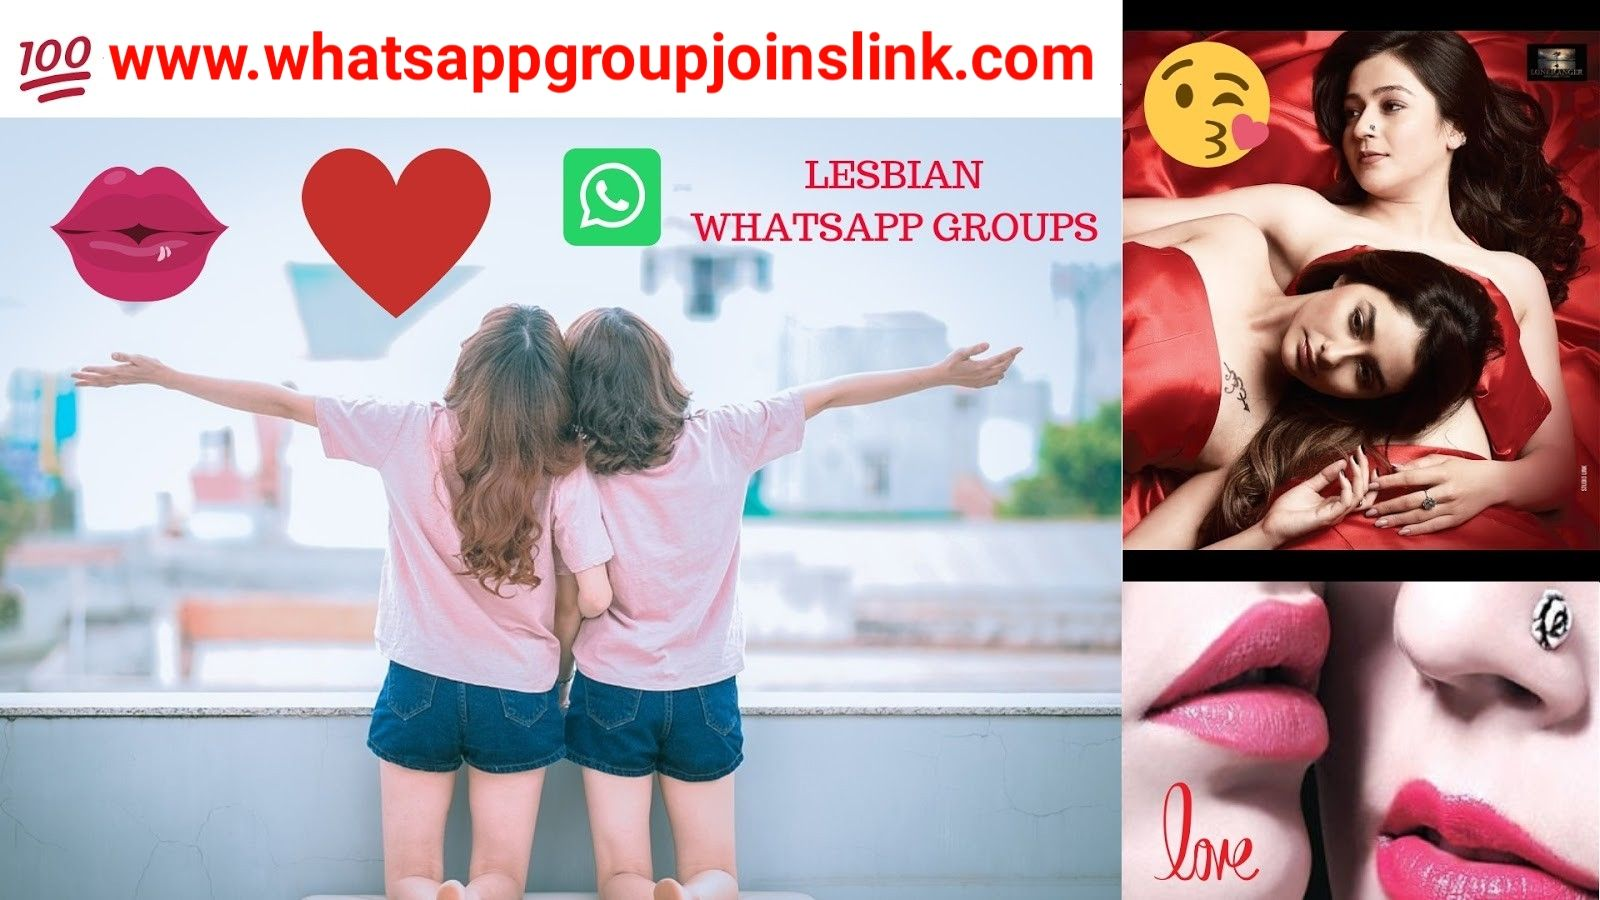 Lesbian Whatsapp Group Join Link Hello Friends Welcome To My